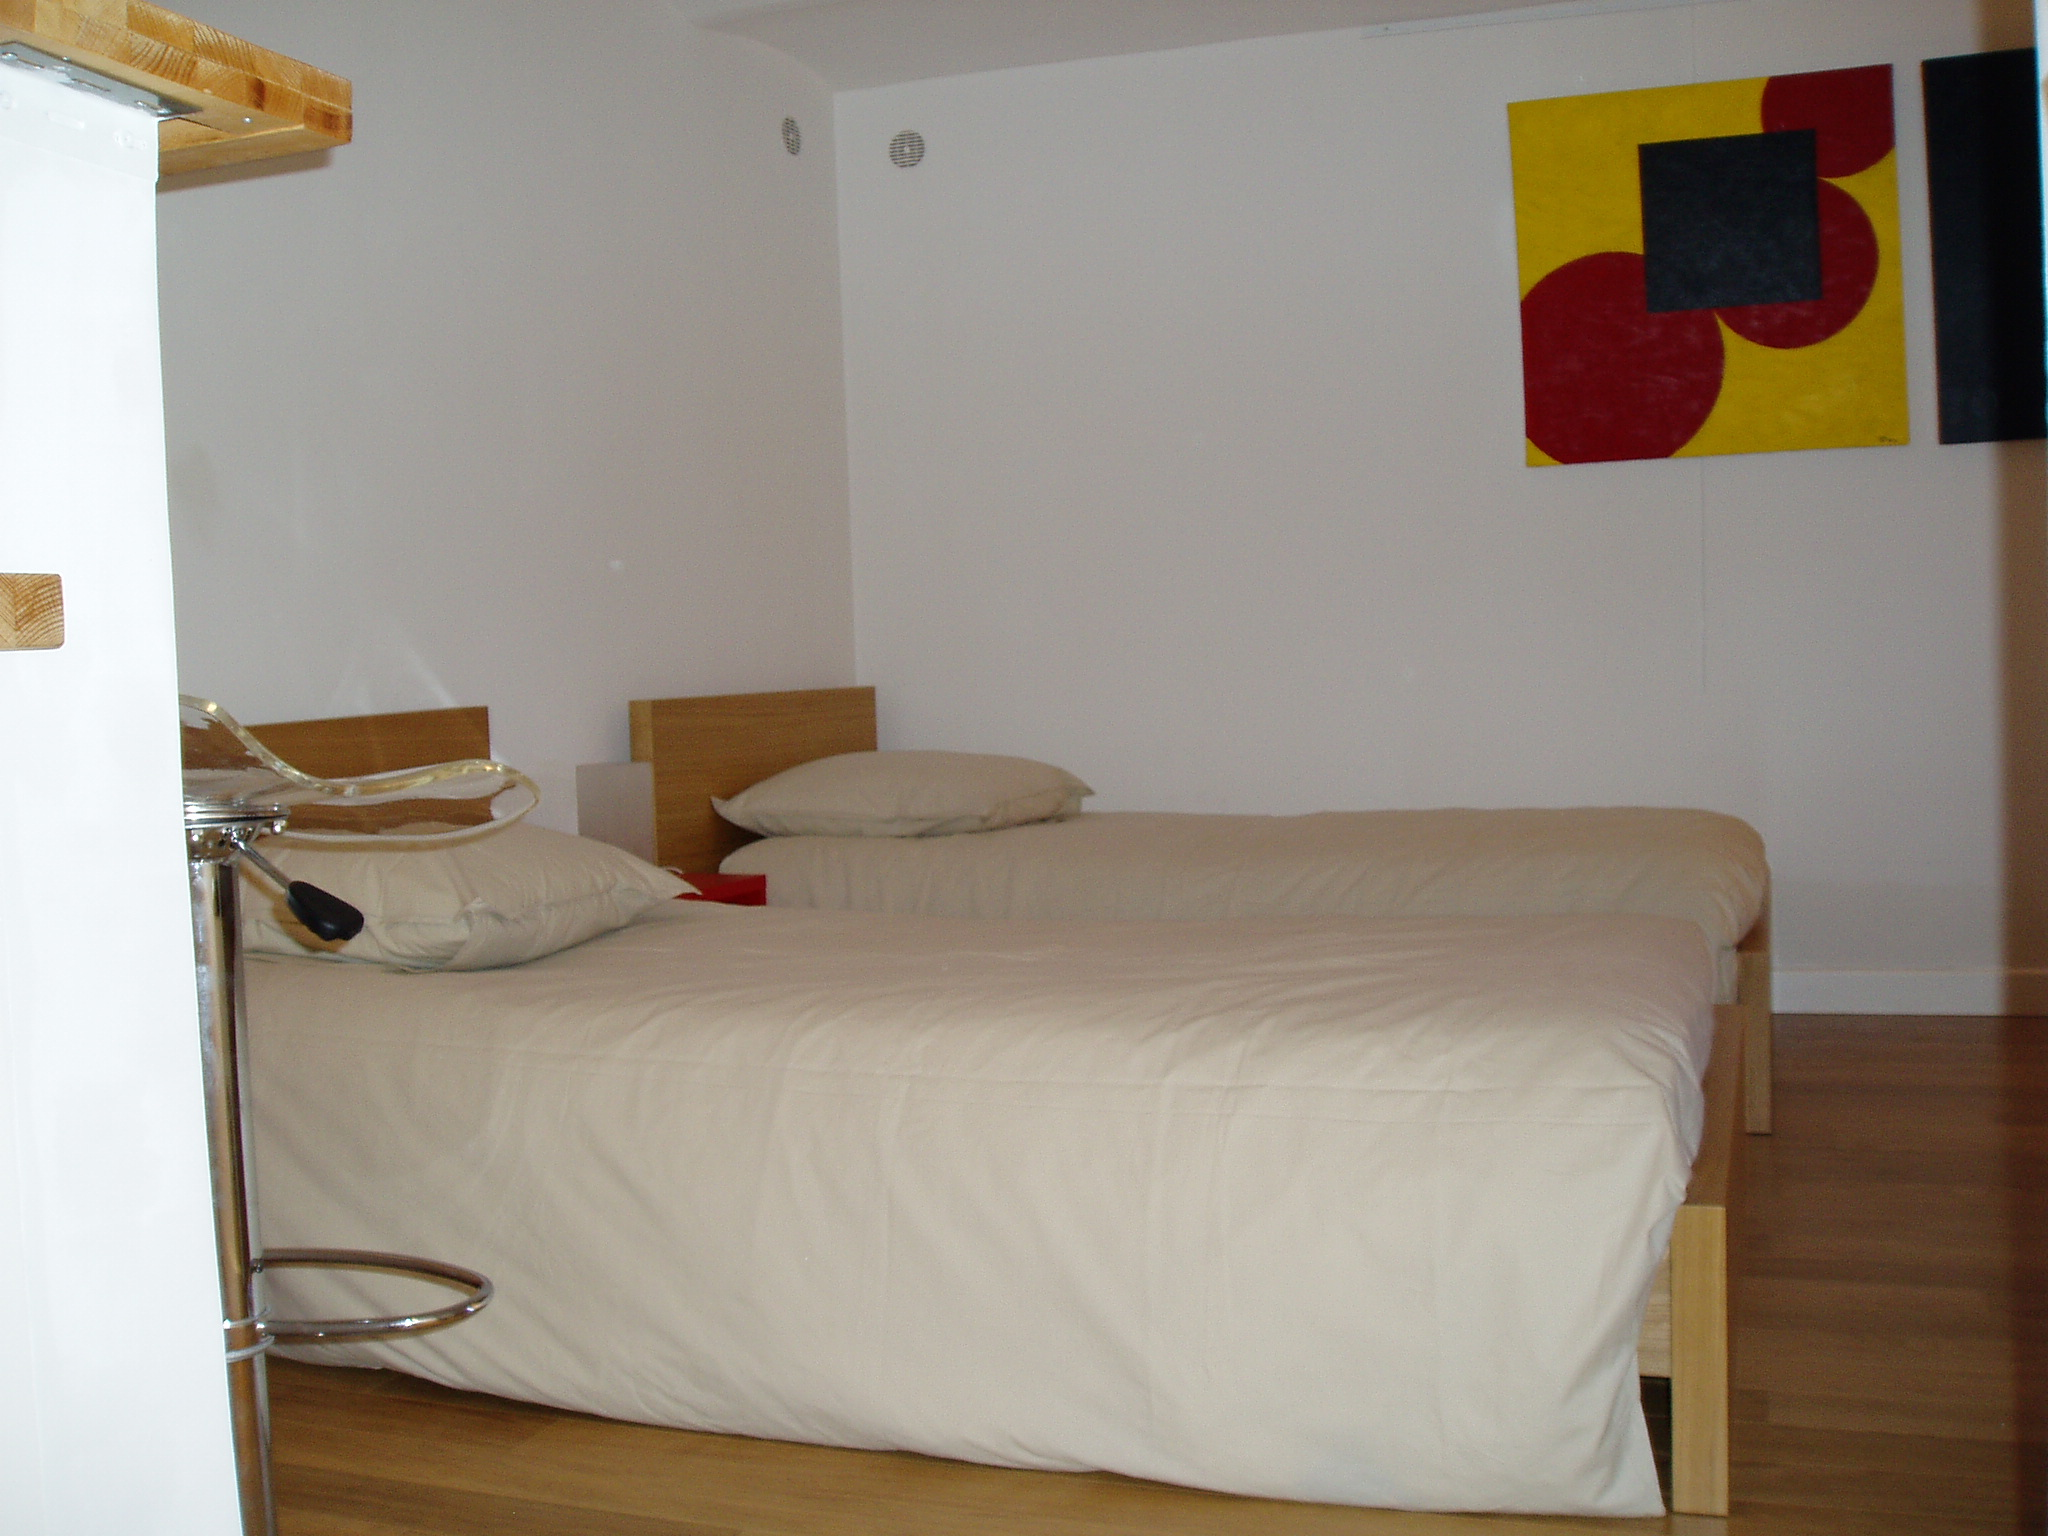 location Studio meuble Cannes chambre d hote d h´te Bed and